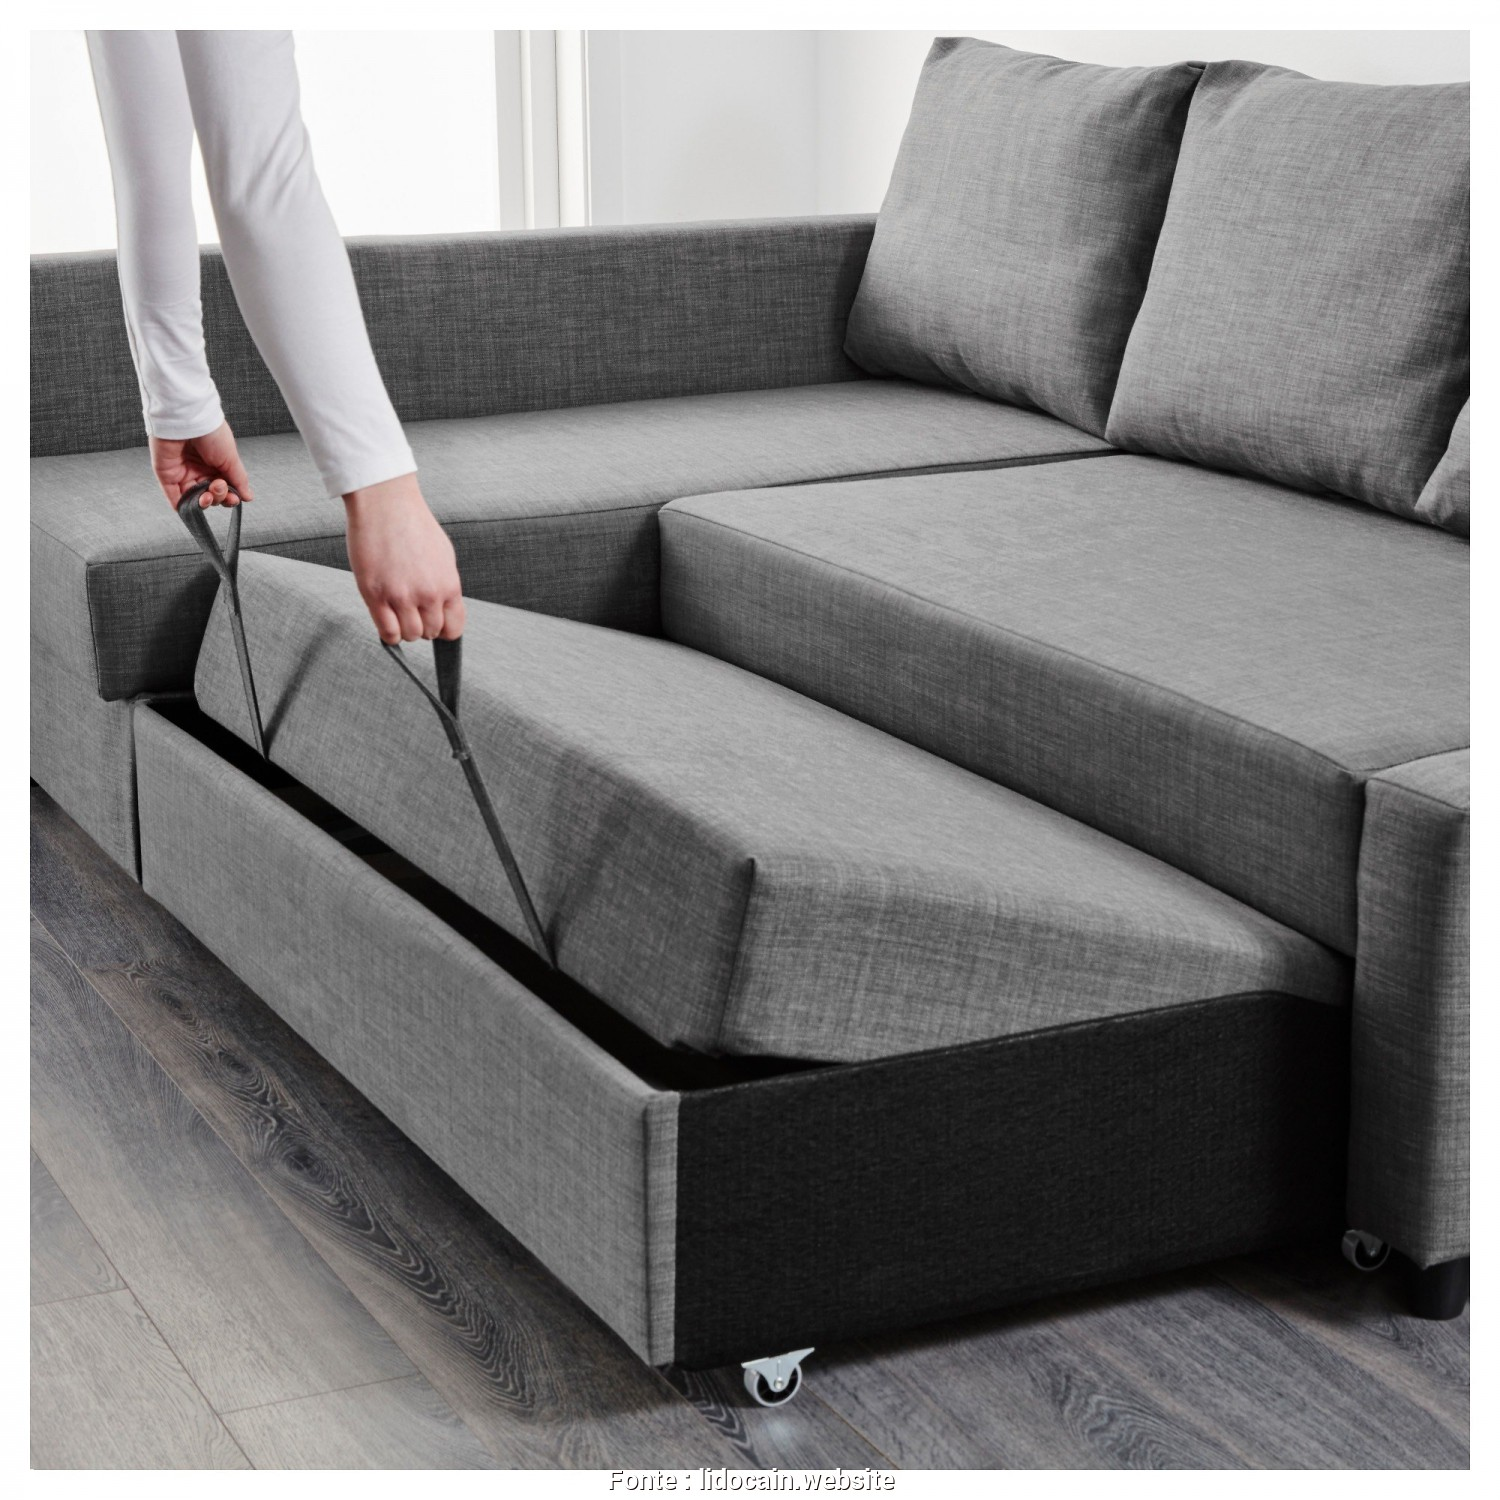 Futon Ikea Balkarp, Freddo 15 Charming Ikea Balkarp Sleeper Sofa Ideas, Lidocain.Website